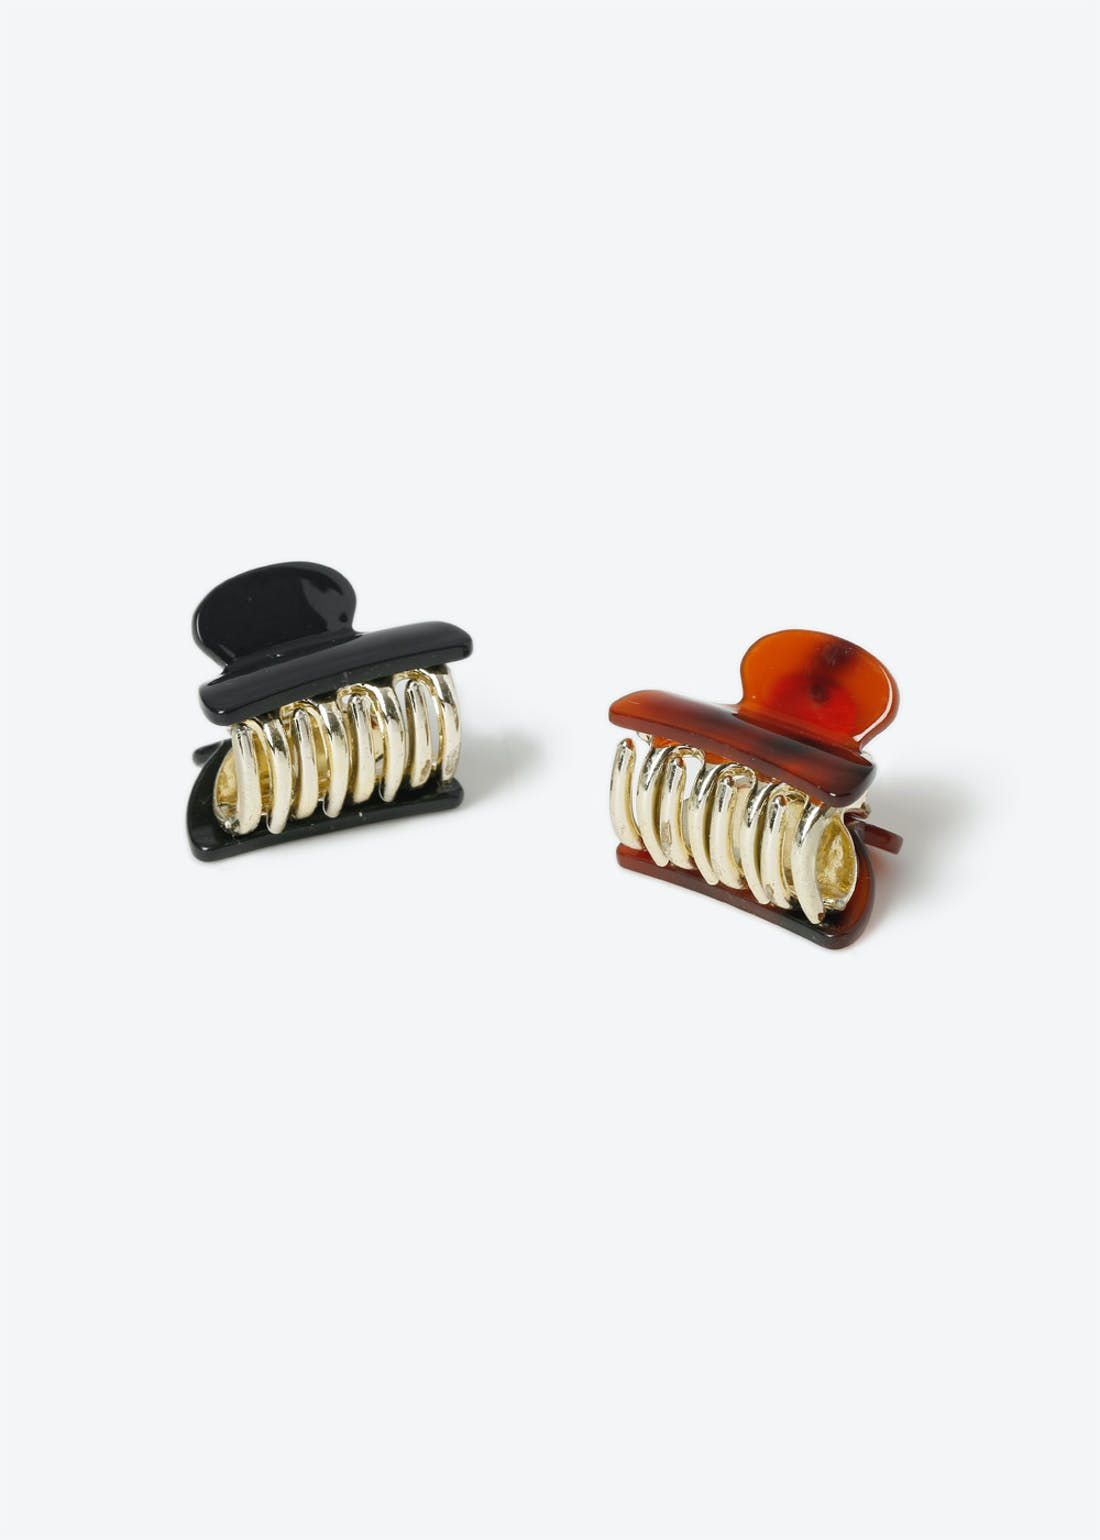 2 Pack Tort Claw